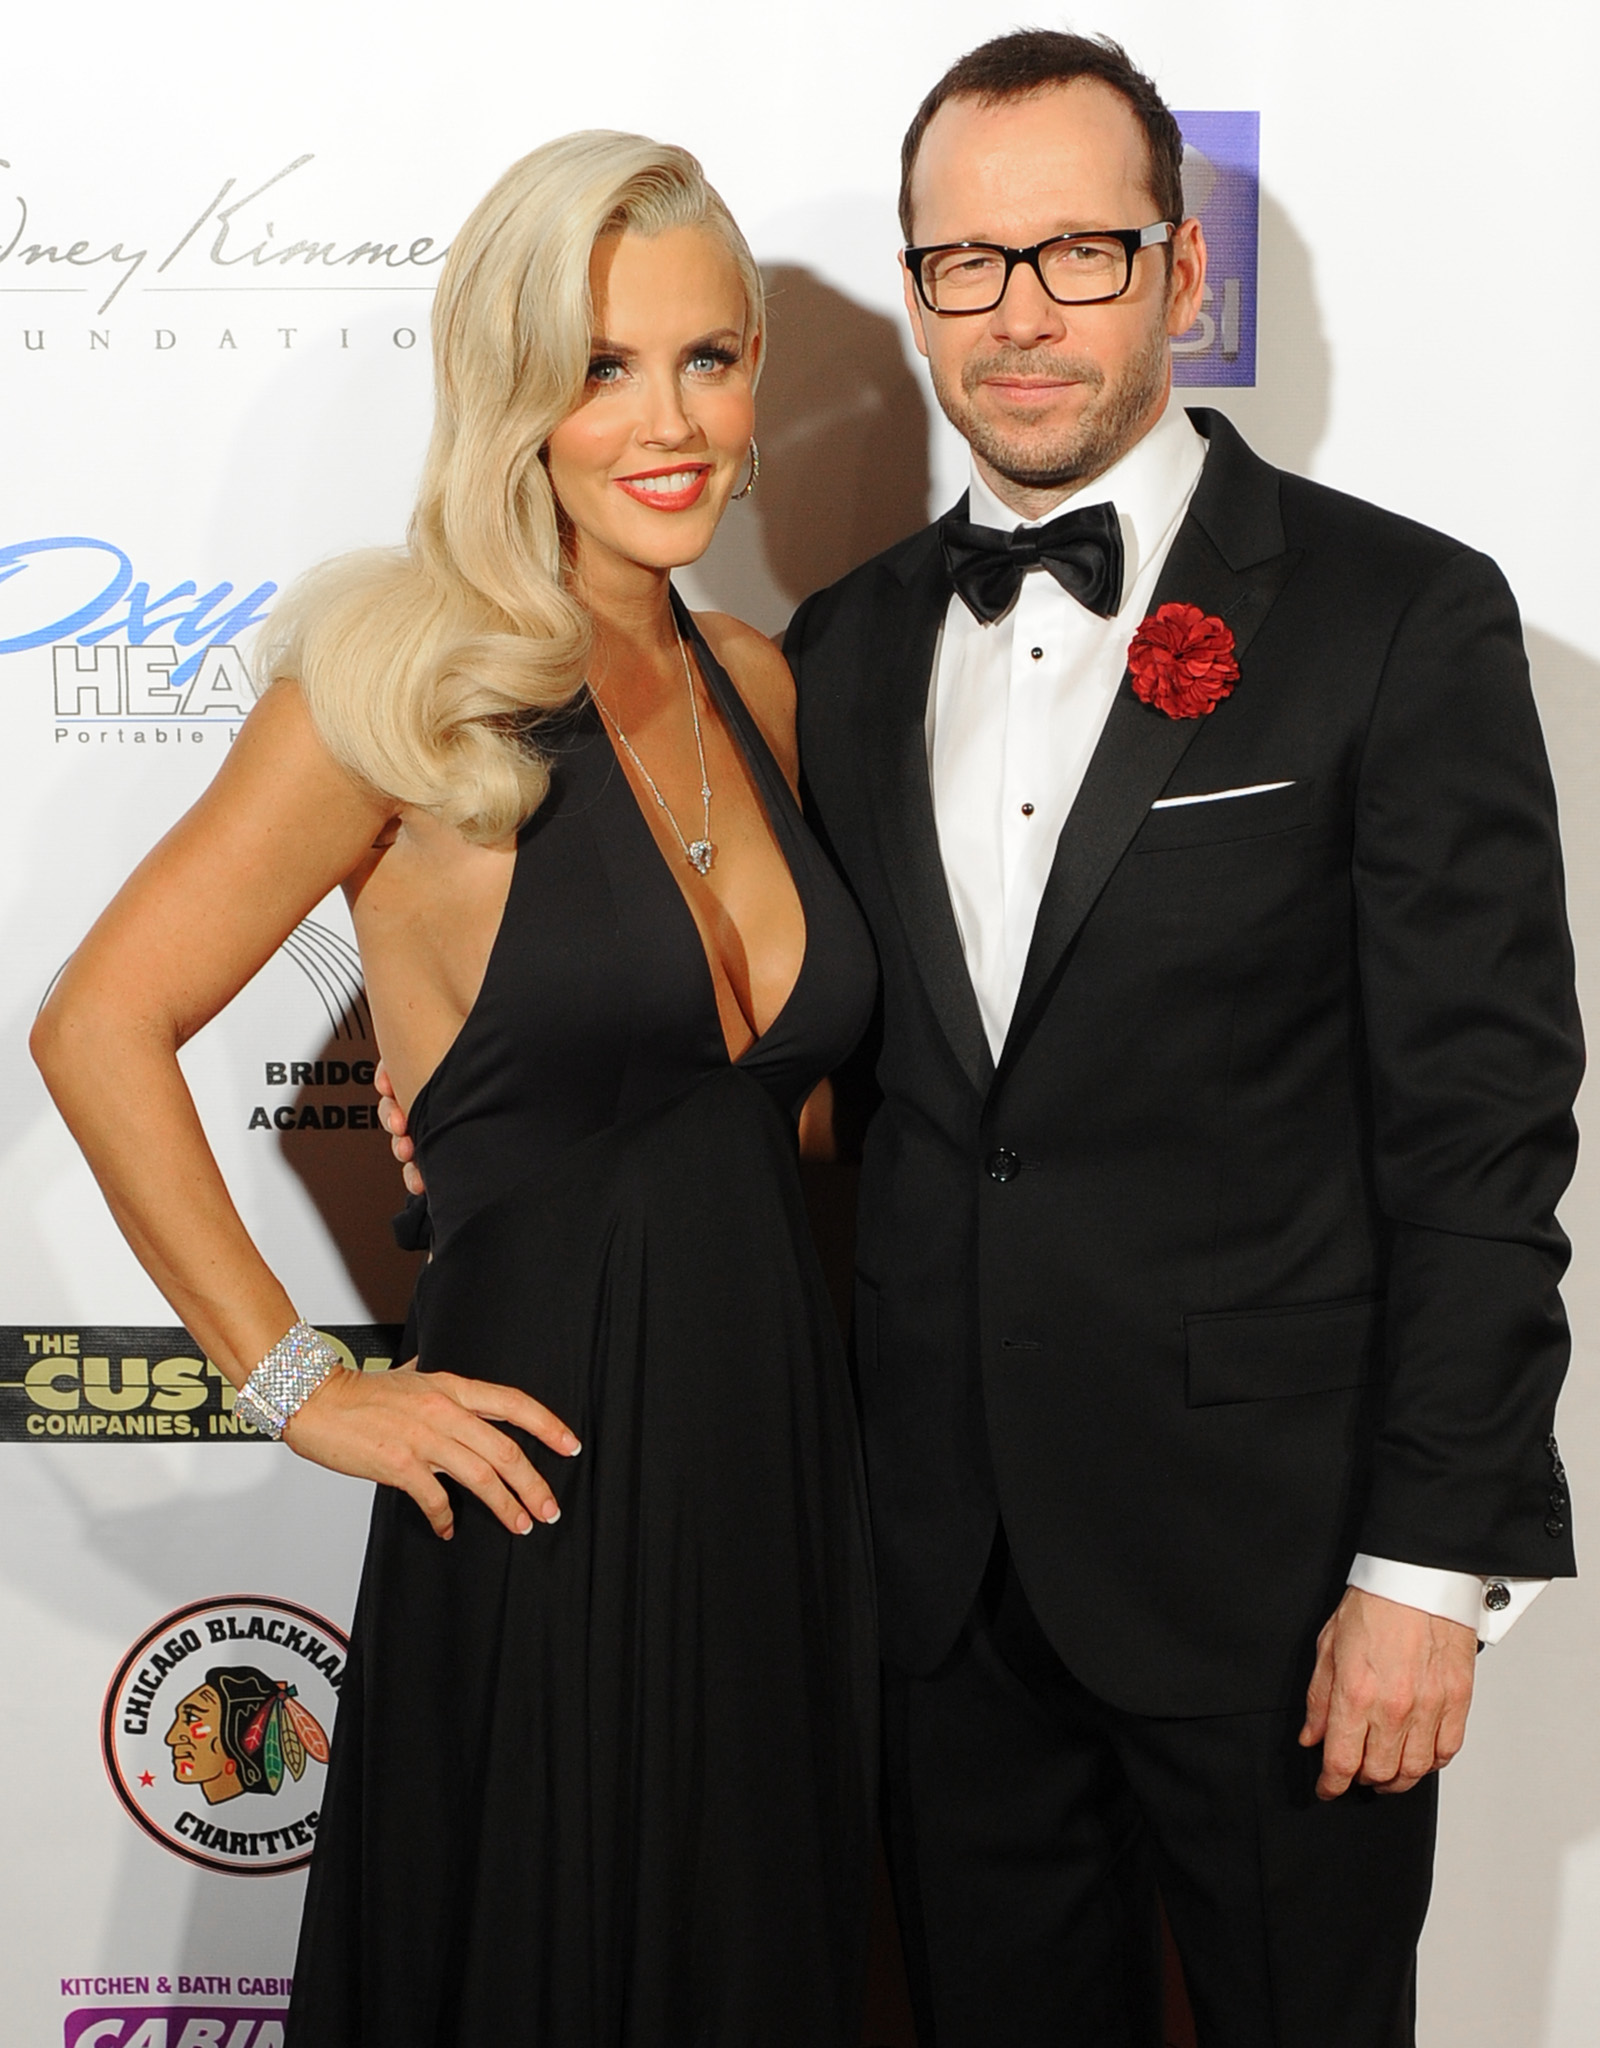 Jenny McCarthy and Donnie Wahlberg (Brian Babineau/Getty Images)